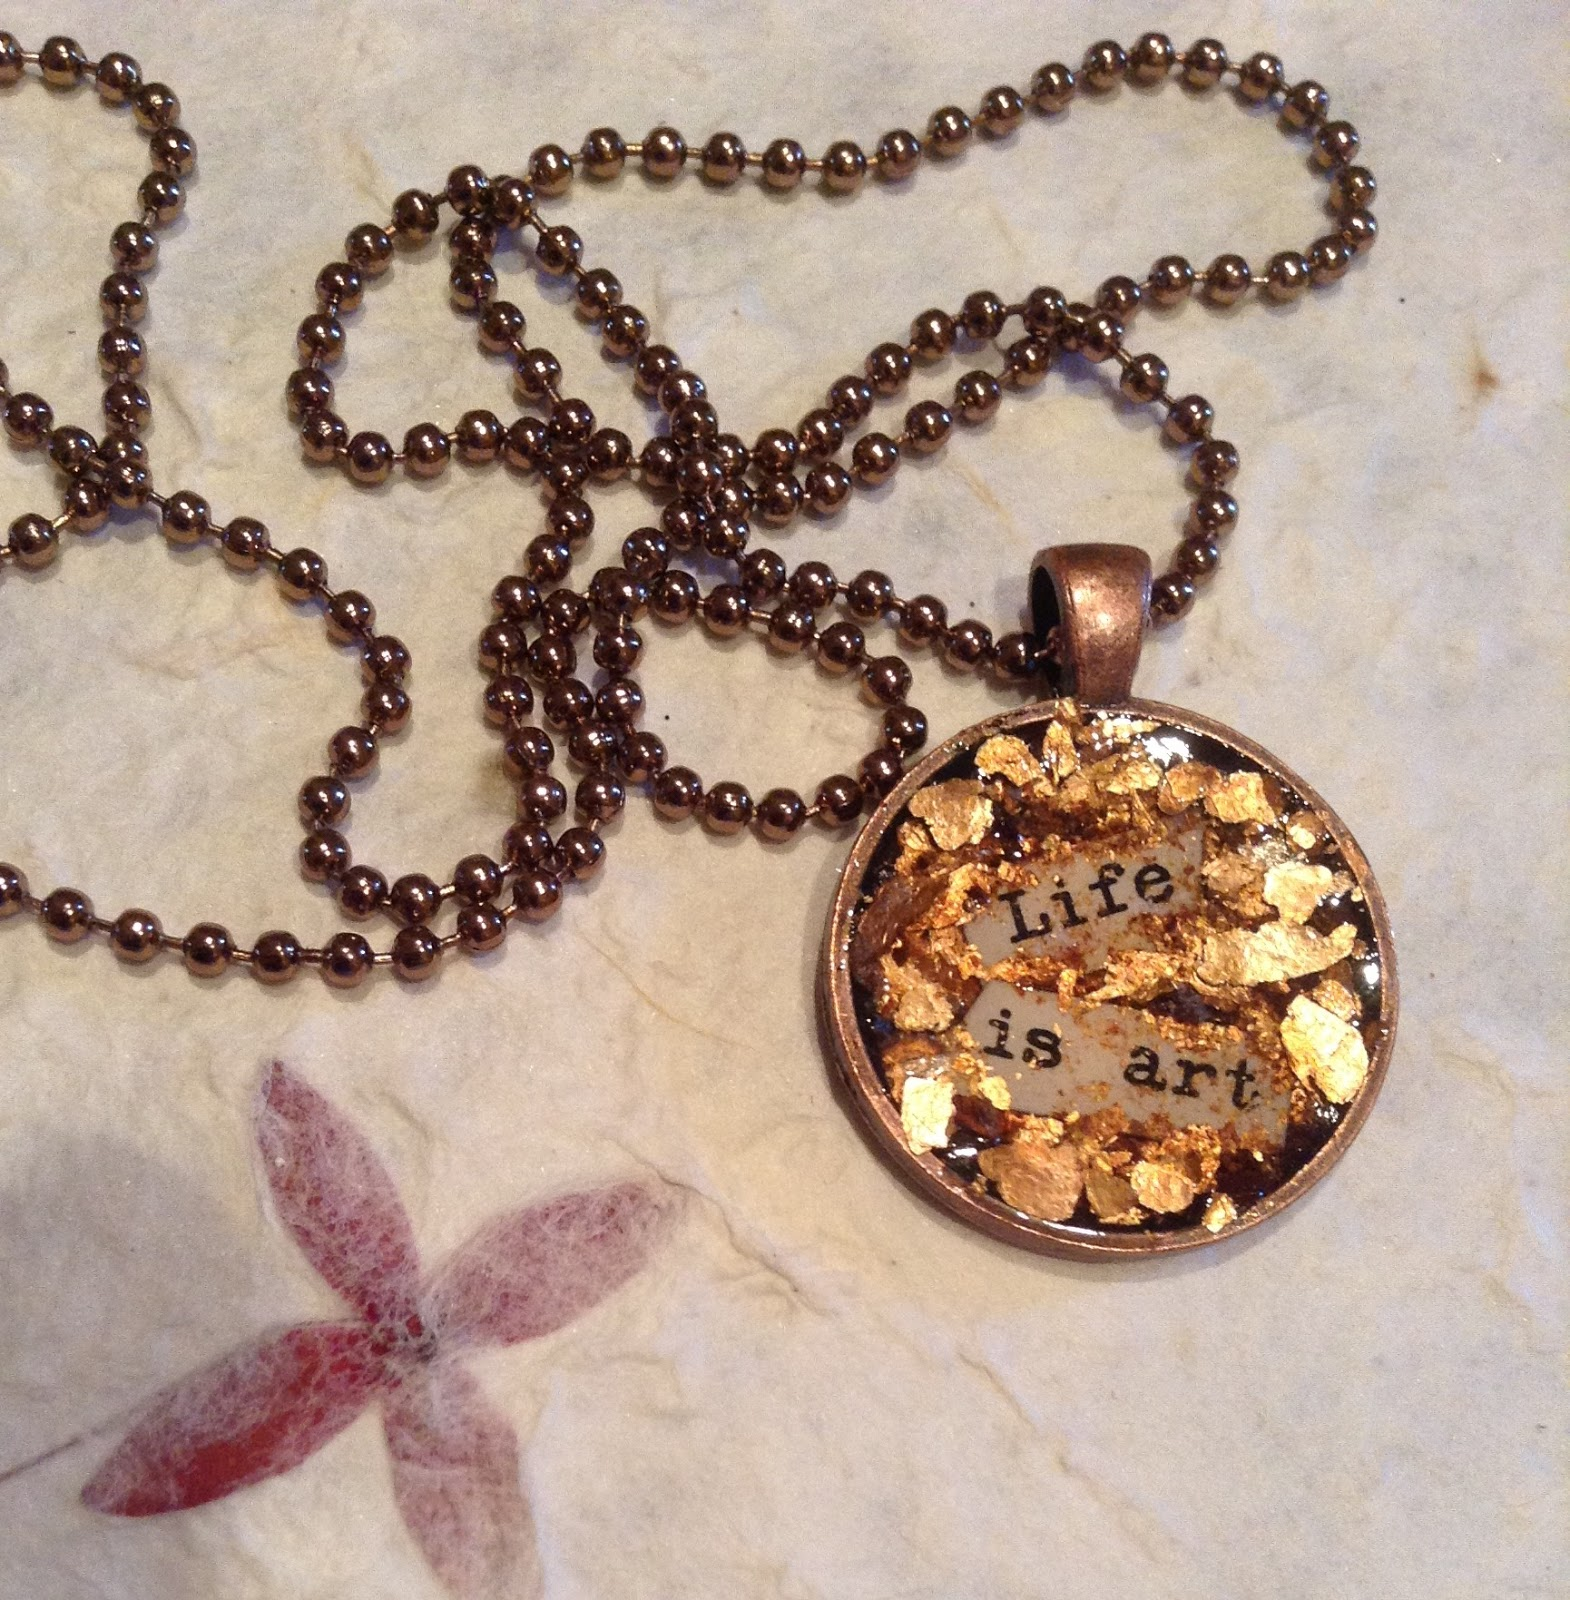 "Willow Run Crafts' Blog: ""Art is Life"" DIY Pendant Tutorial"